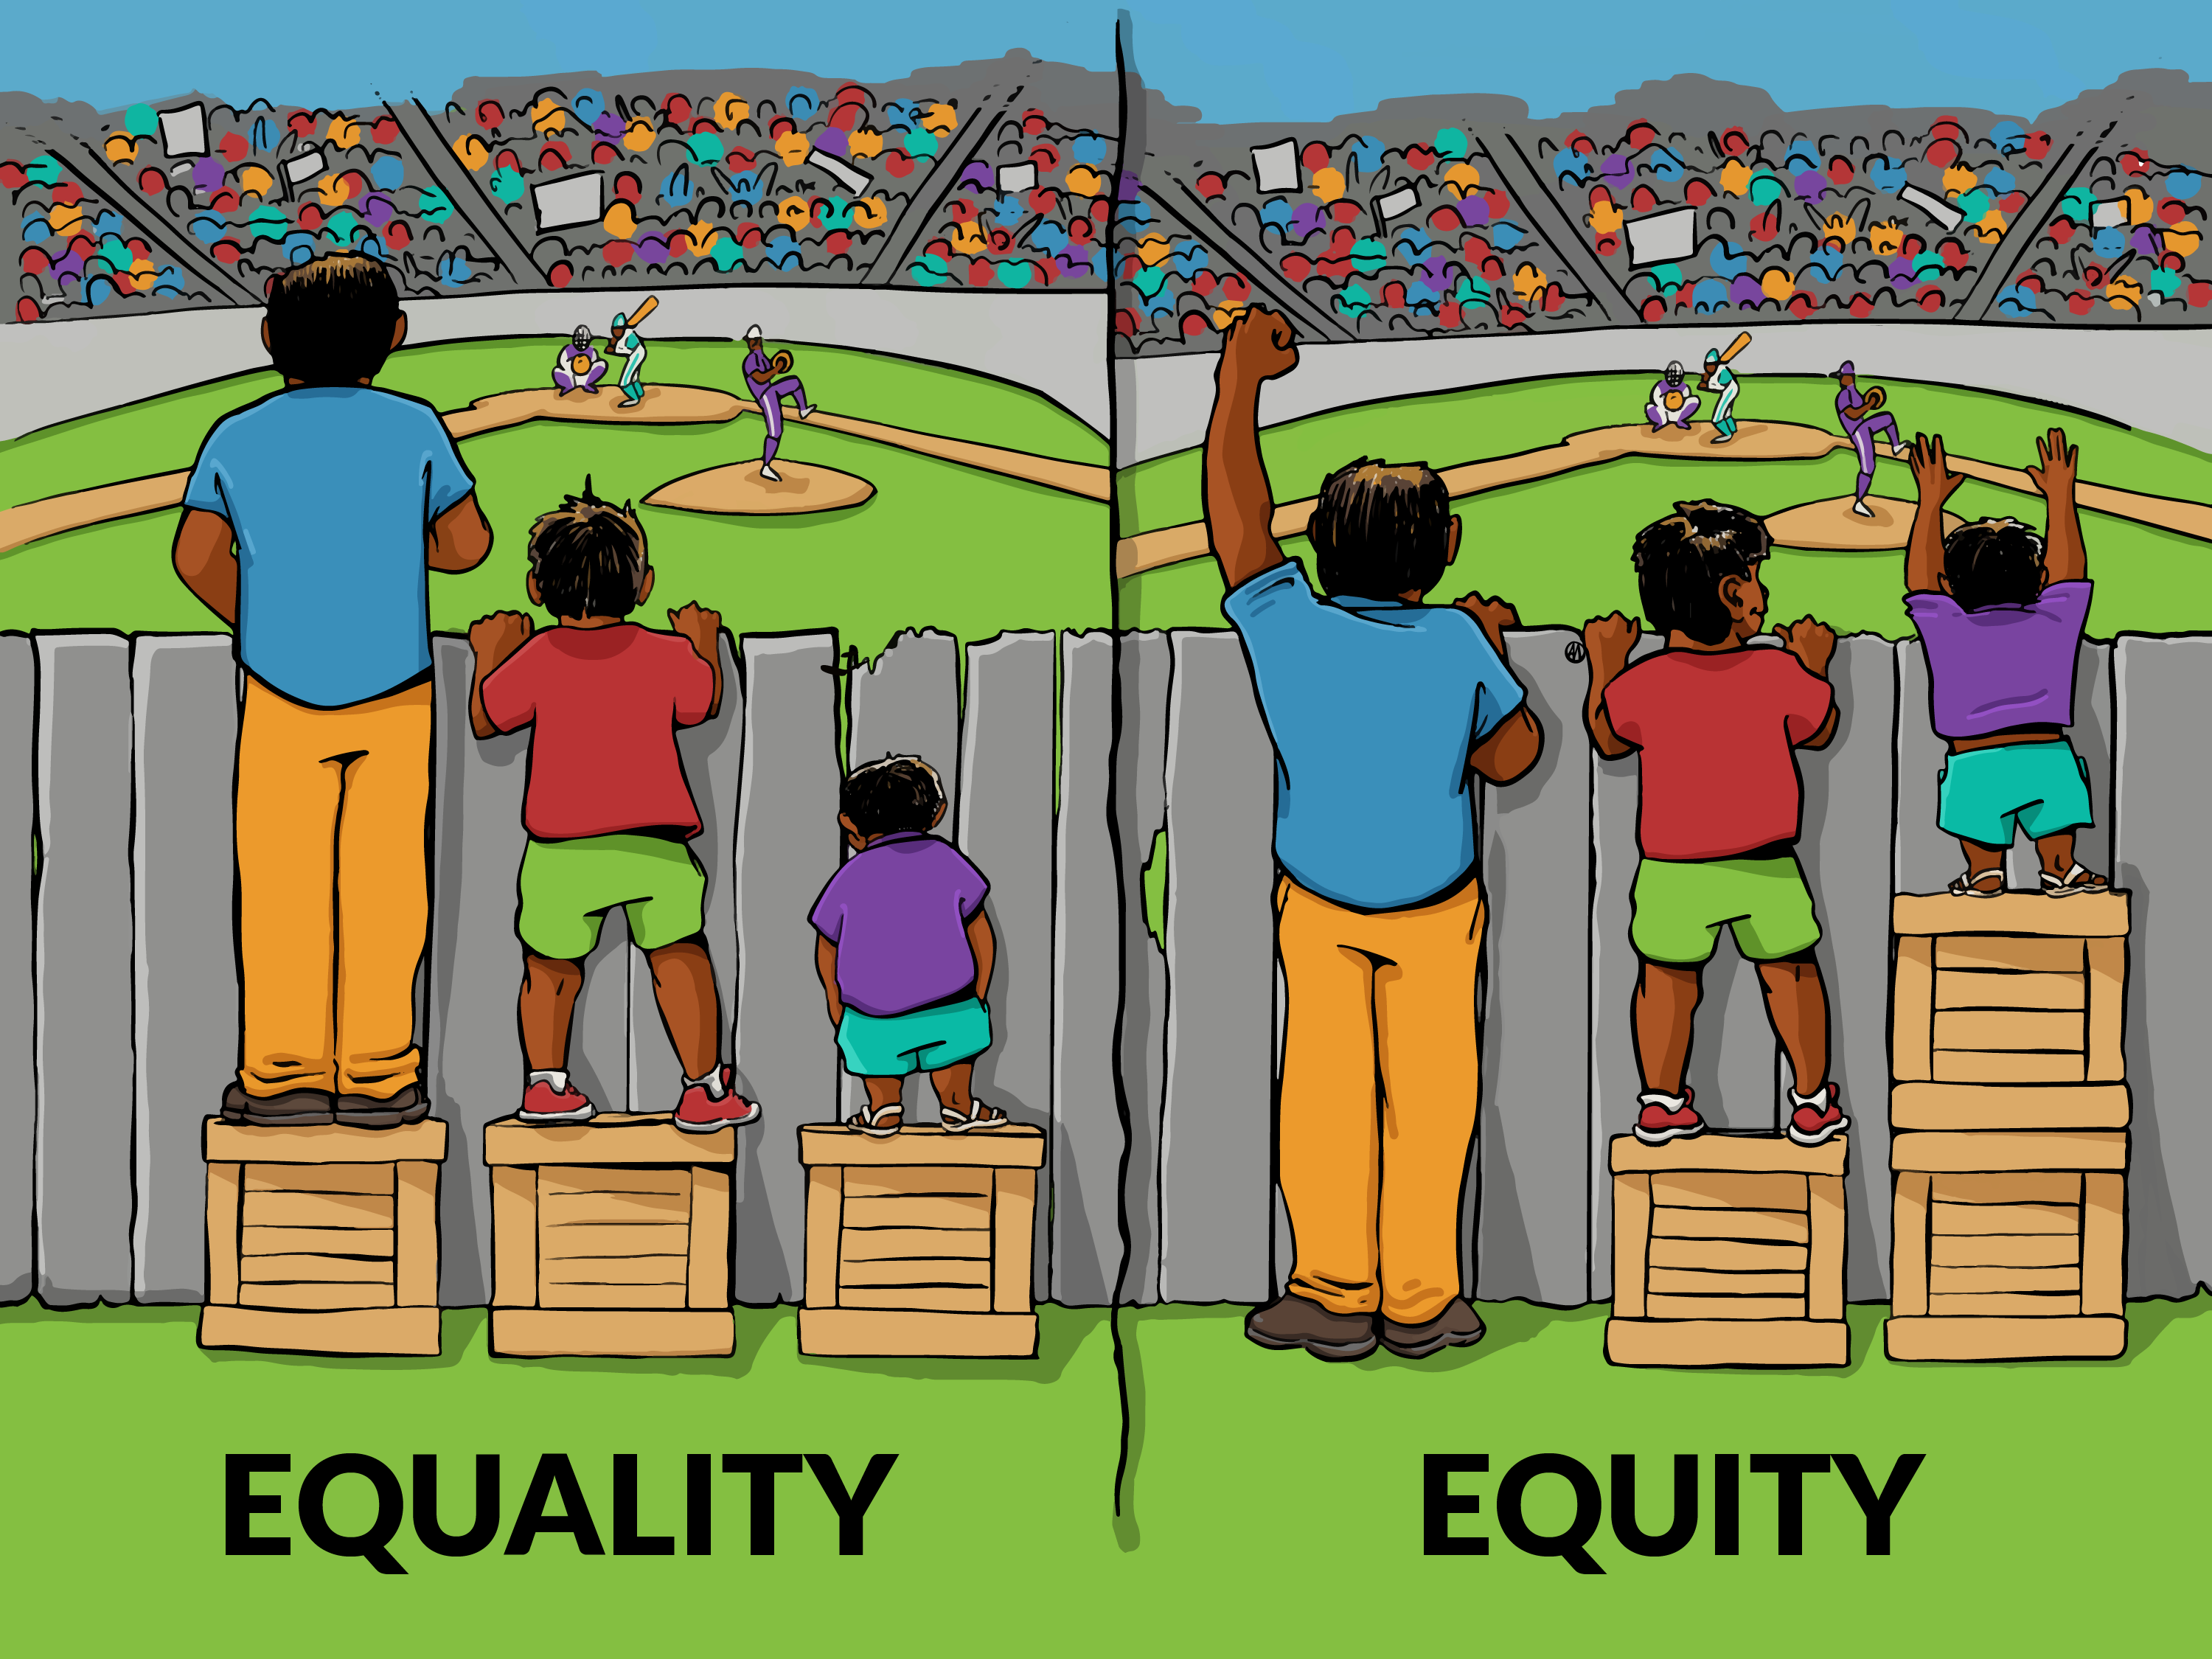 Text demonstrates the difference between equality and equity with equality resulting in unequal views and equity resulting in equal views